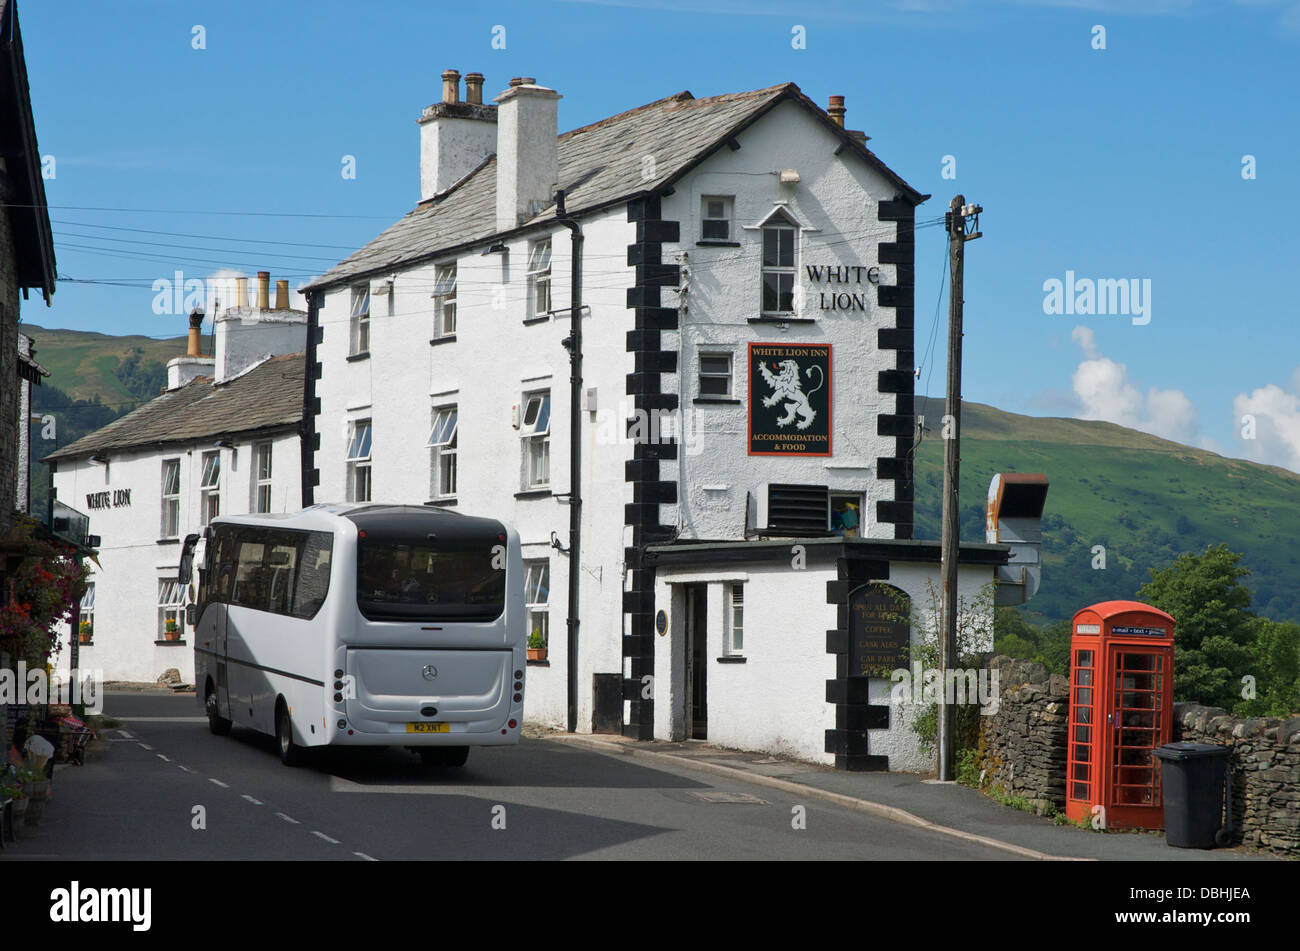 Coach passing the White Lion Inn, Patterdale, Lake District National Park, Cumbria, England UK - Stock Image